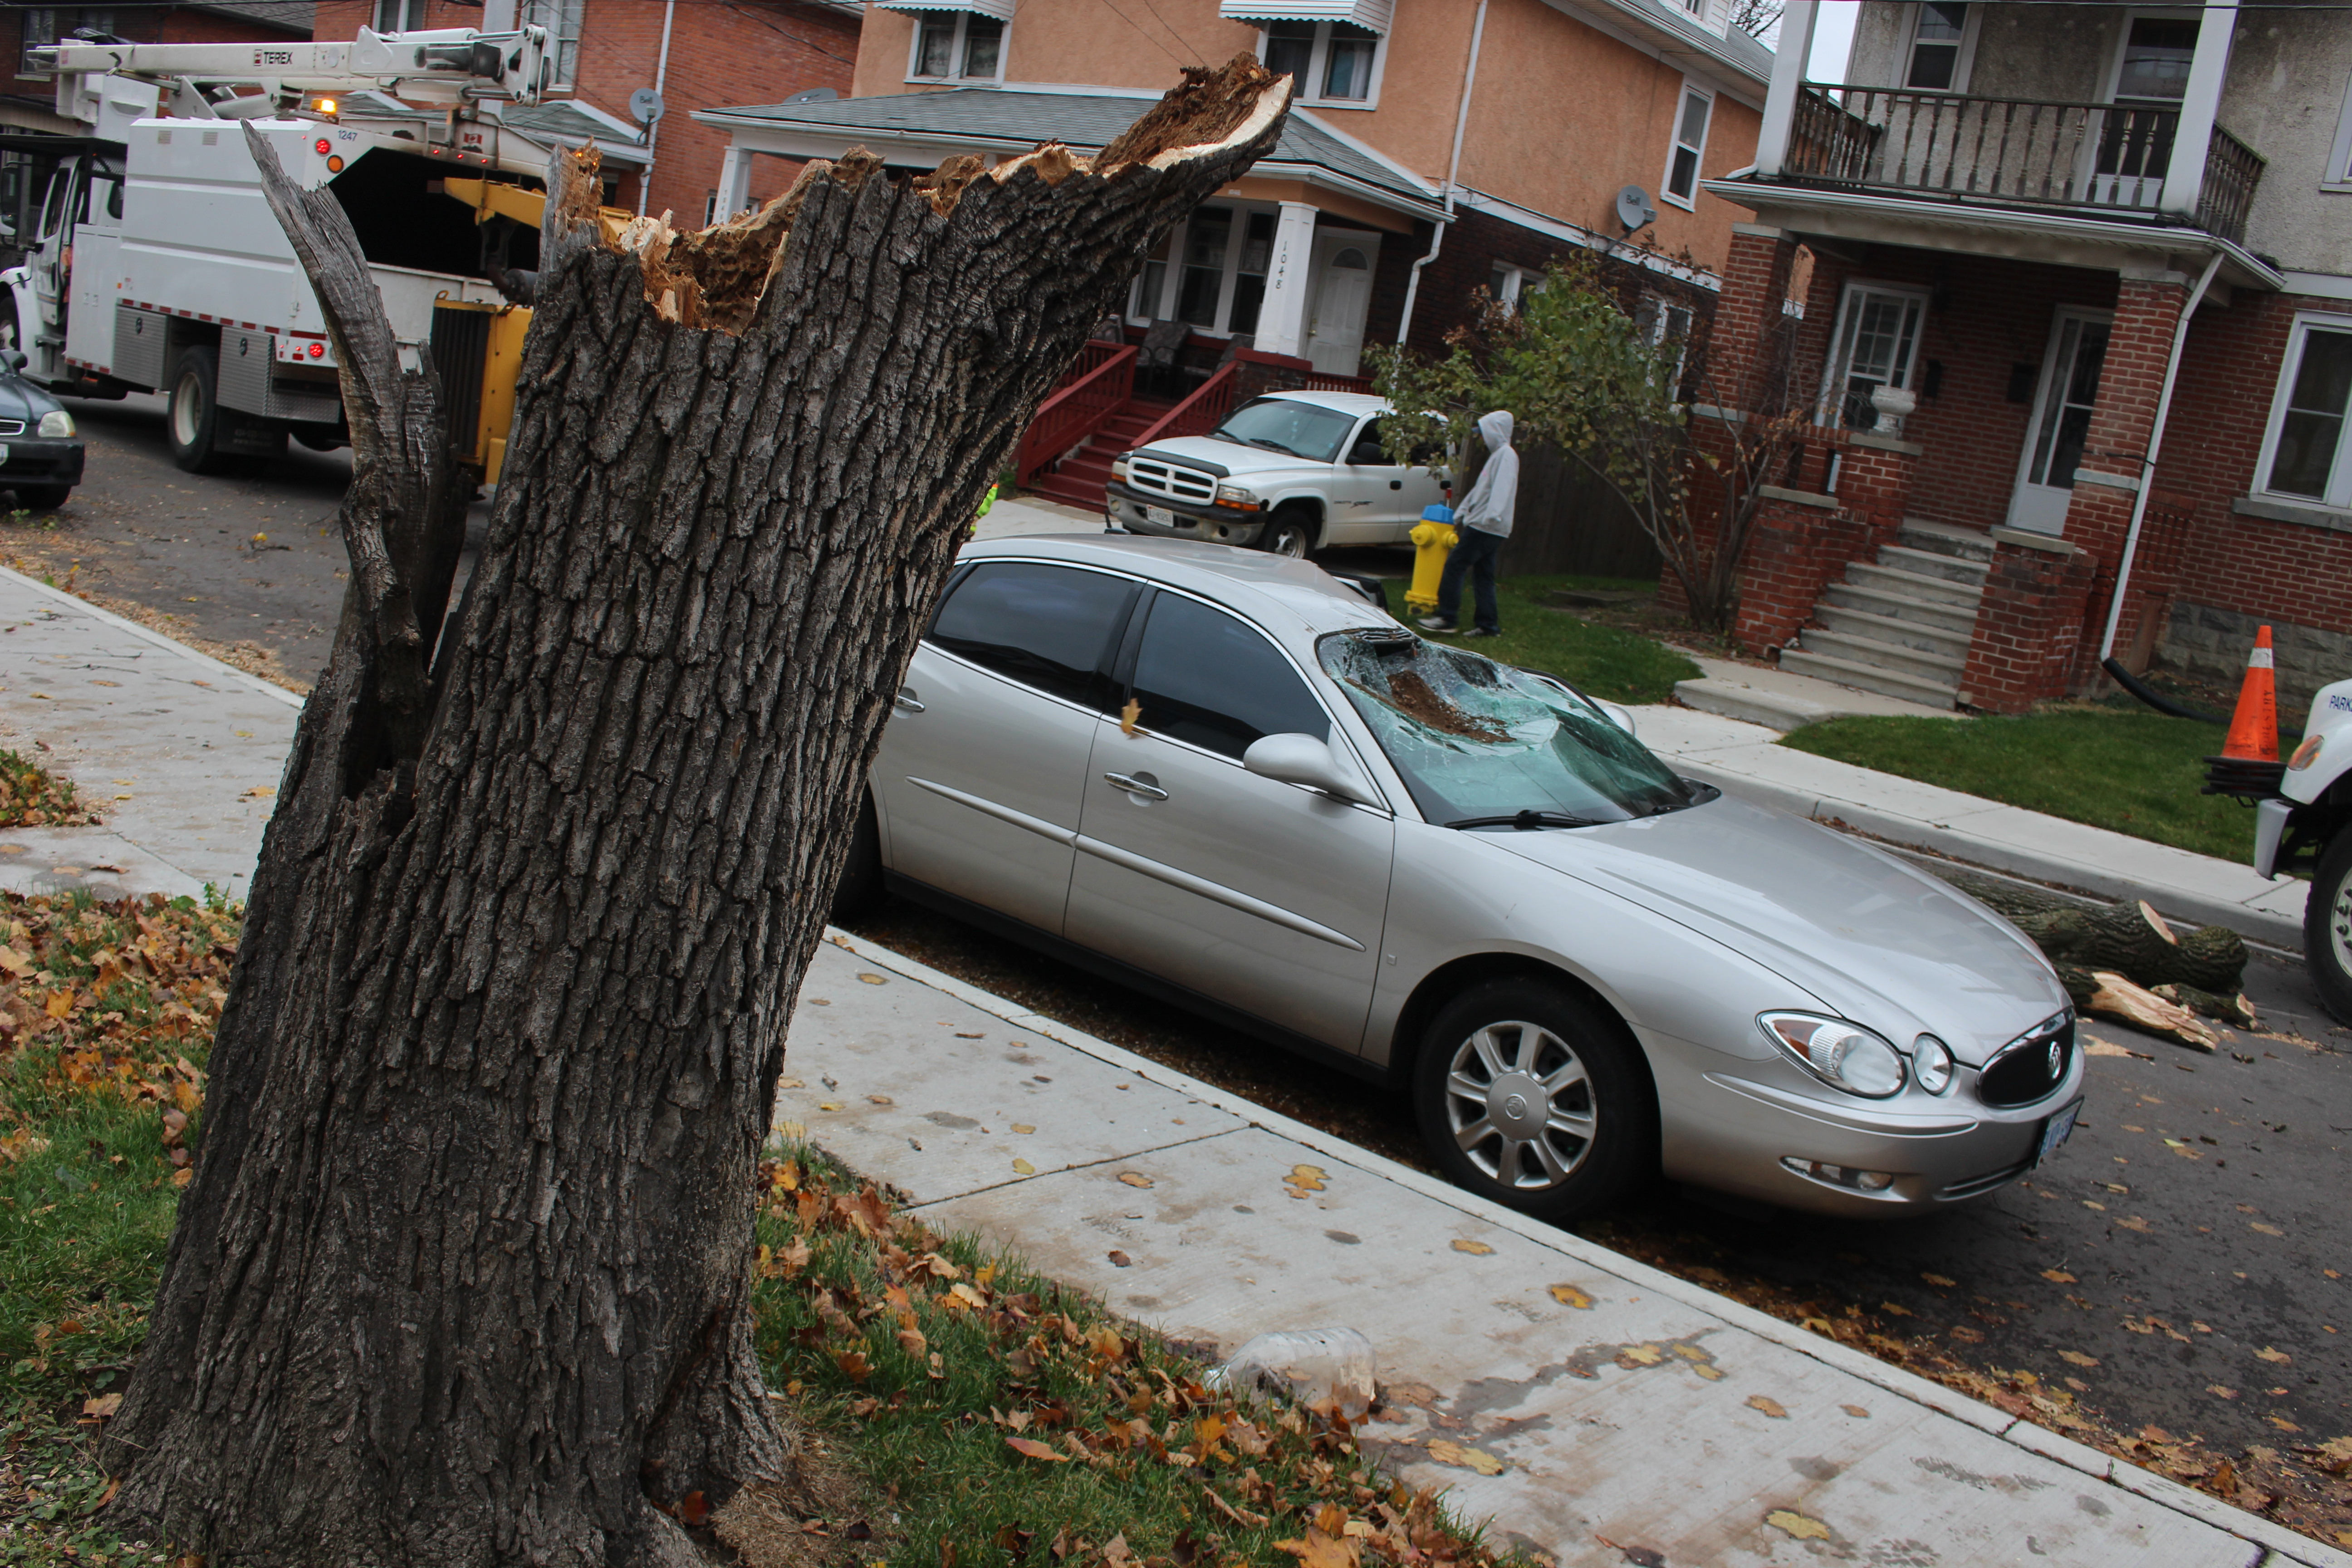 Wind topples a hollow tree onto a parked car on Pellissier St., November 12, 2015. (Photo by Jason Viau)